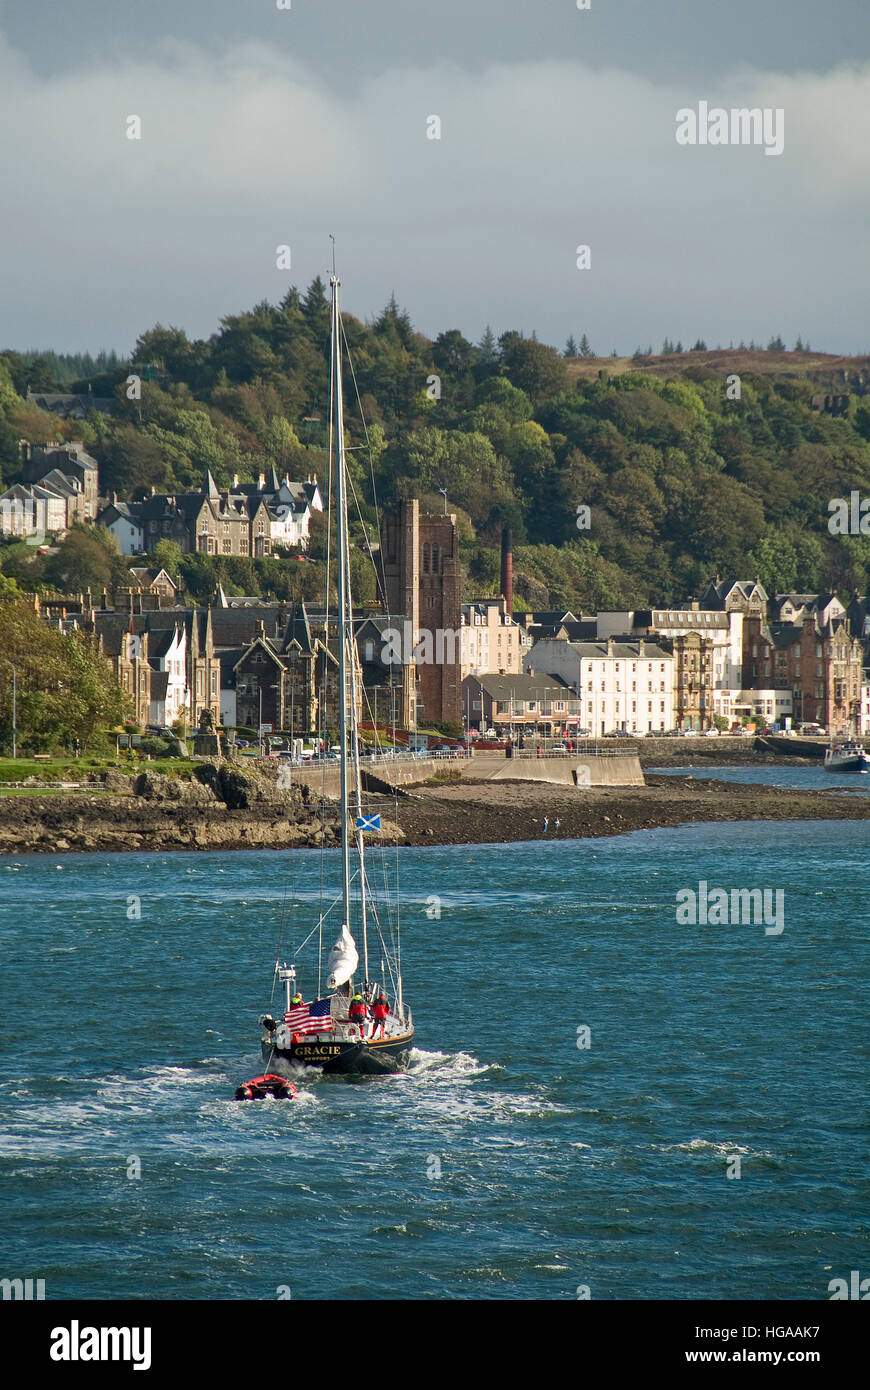 View of Oban rom Cal-Mac ferry Lord of the Isles. - Stock Image